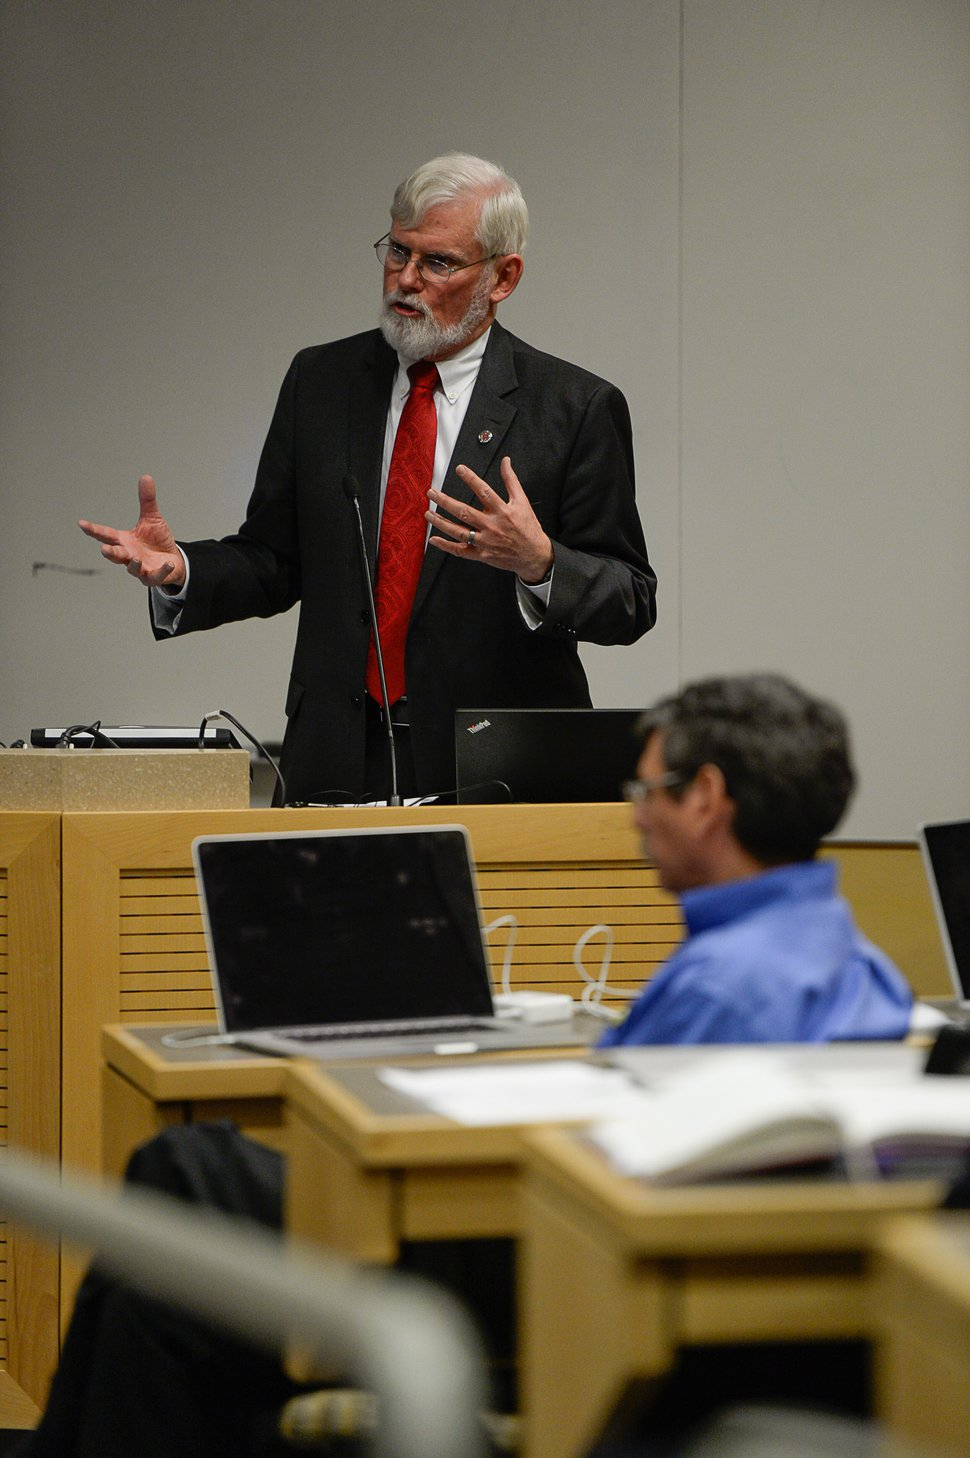 Francisco Kjolseth | The Salt Lake Tribune University of Utah President David Pershing announces A. Lorris Betz as the interim U. Health Care CEO during a meeting at the Spencer F. and Cleone P. Eccles Health and Sciences Building on Monday, May 1, 2017. Pershing also addressed plans for finding a replacement for former Health Care CEO, Vivian Lee. President Pershing announced he will be stepping down from his post, and that the search for his replacement will run in